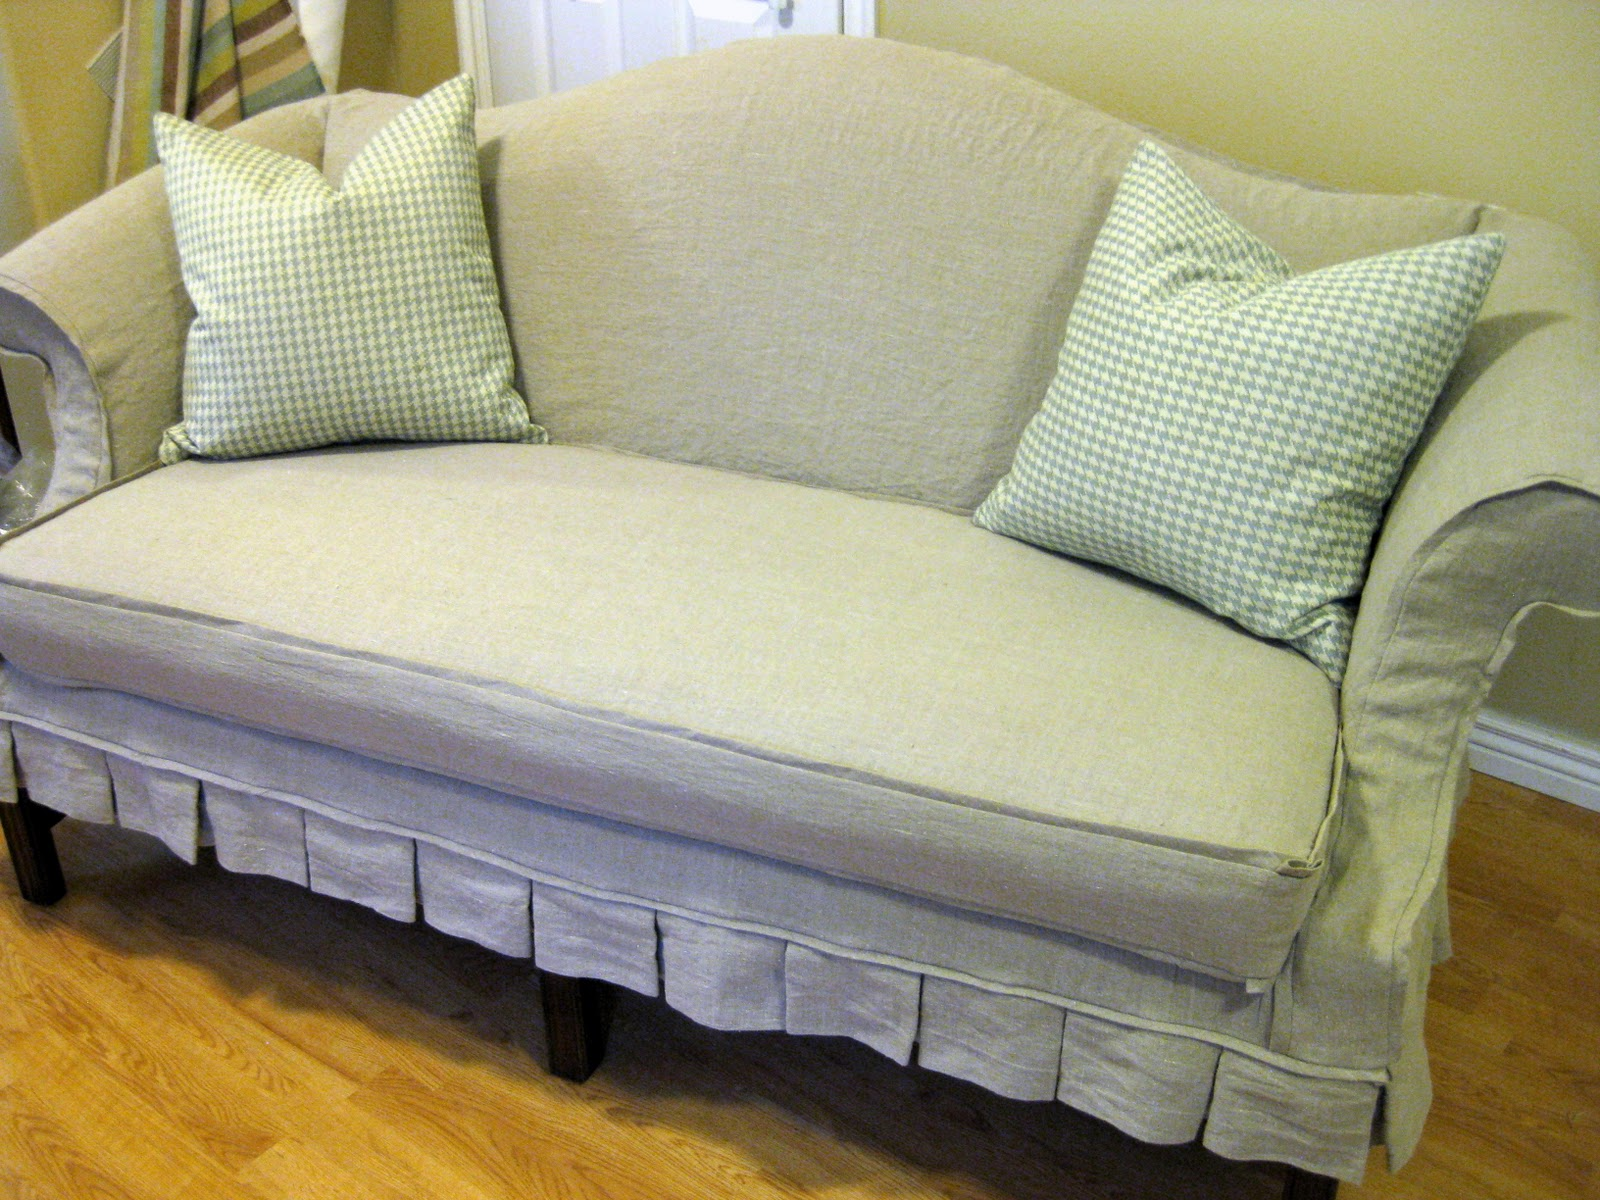 Sofa Welt Custom Slipcovers By Shelley Oatmeal Linen Loveseat With